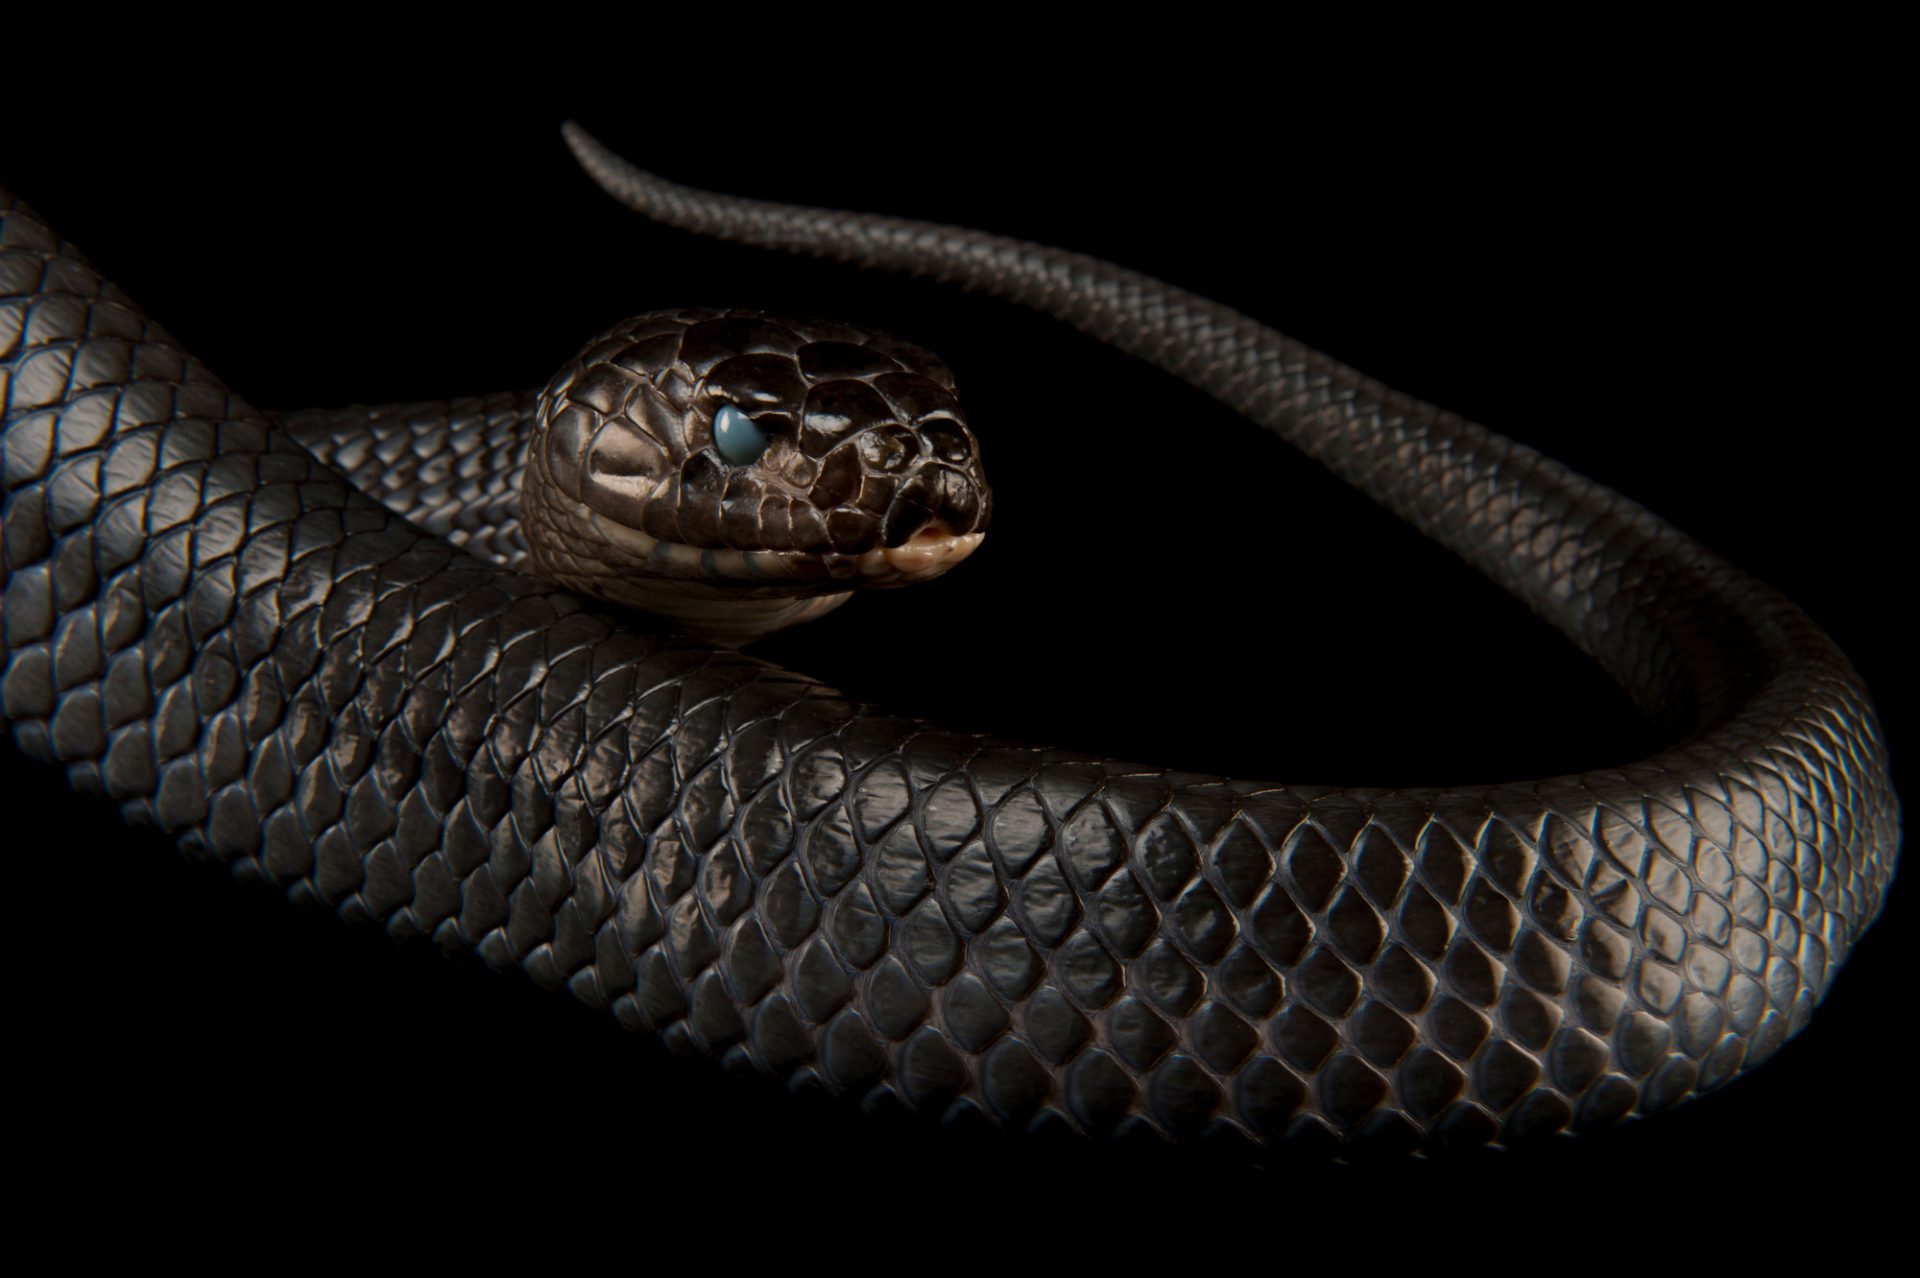 Texas indigo snake (Drymarchon corais erebennus) at the Fort Worth Zoo.